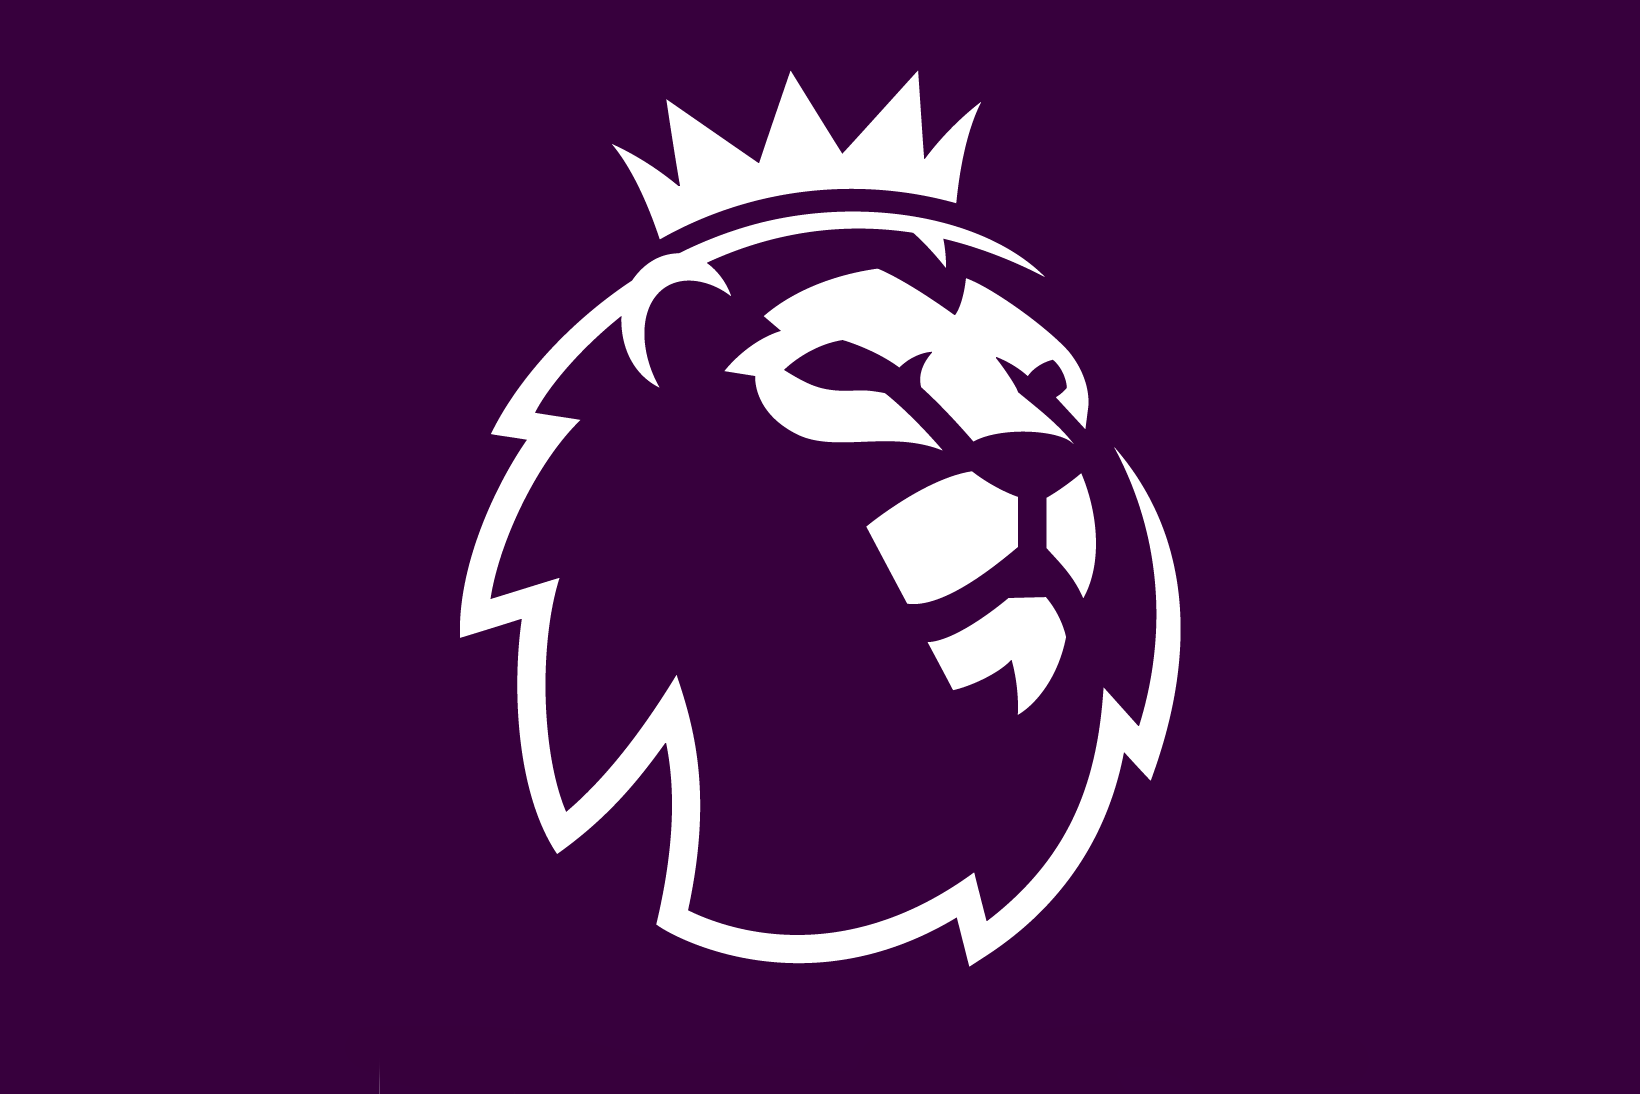 Statement from the 20 Premier League clubs.